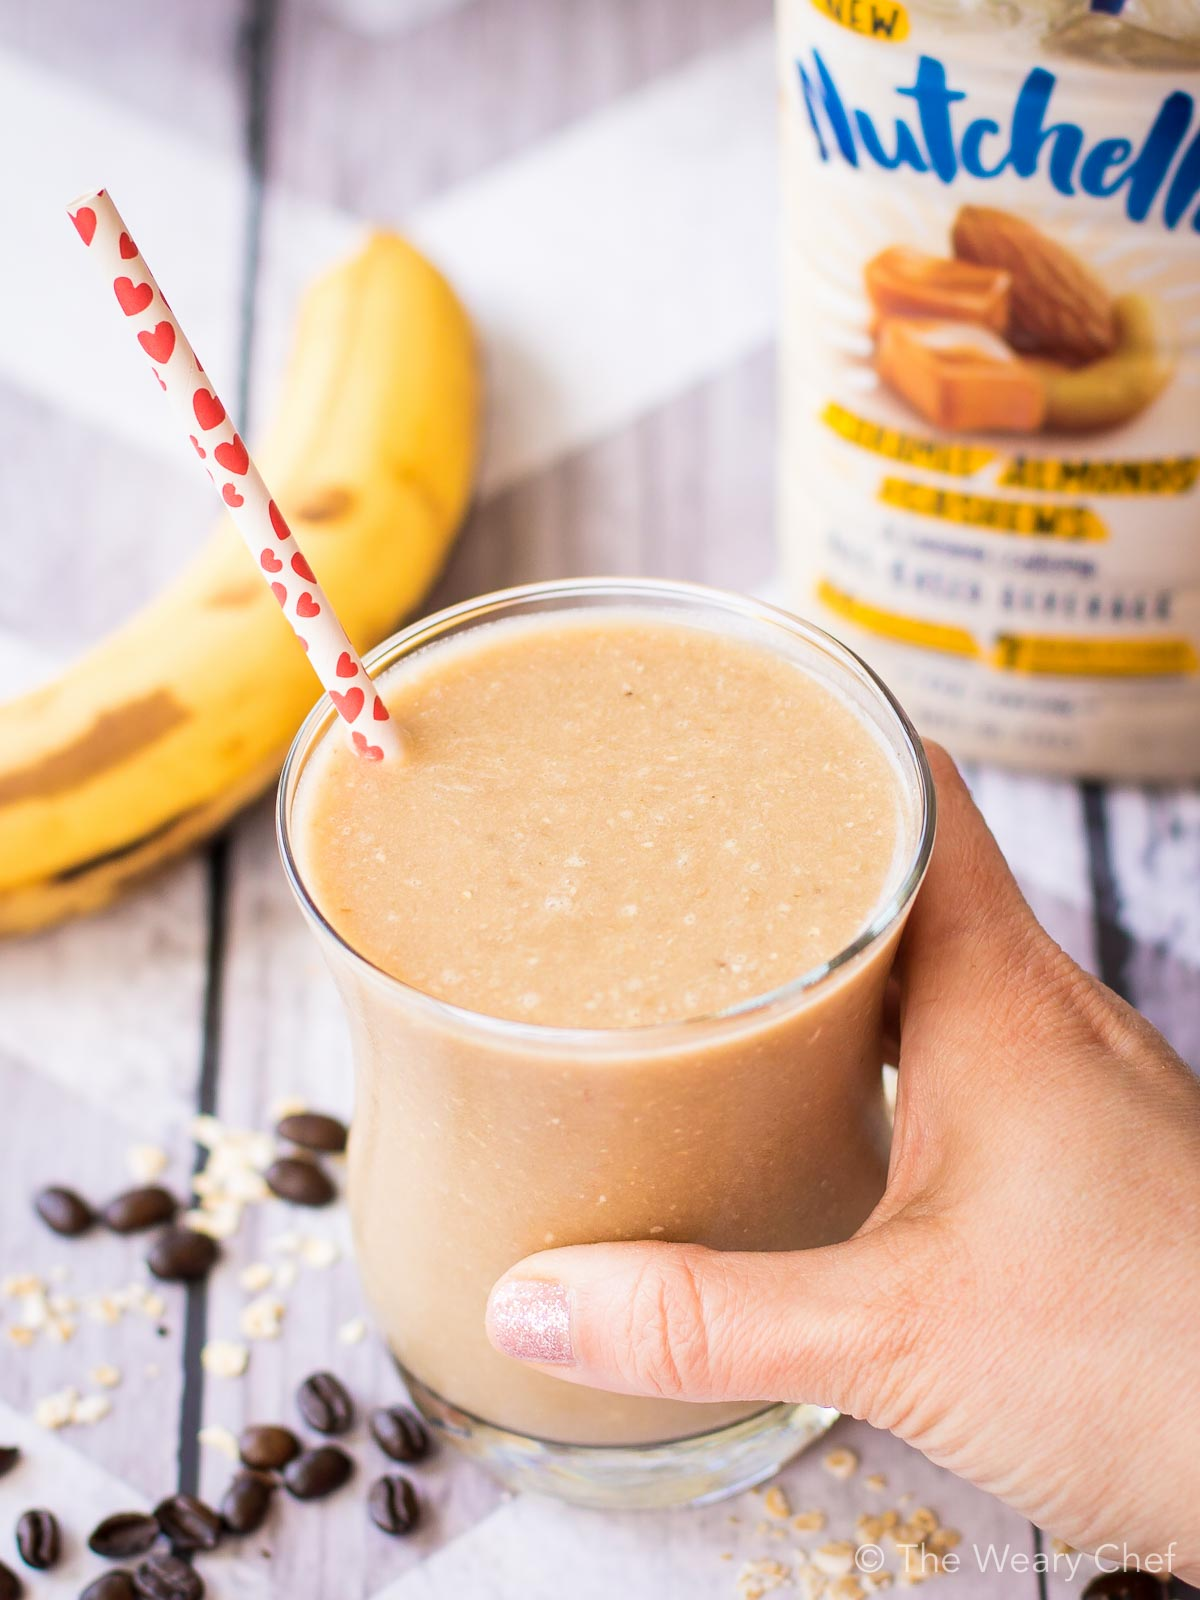 Grab a banana nut smoothie for a wholesome, tasty breakfast or snack!